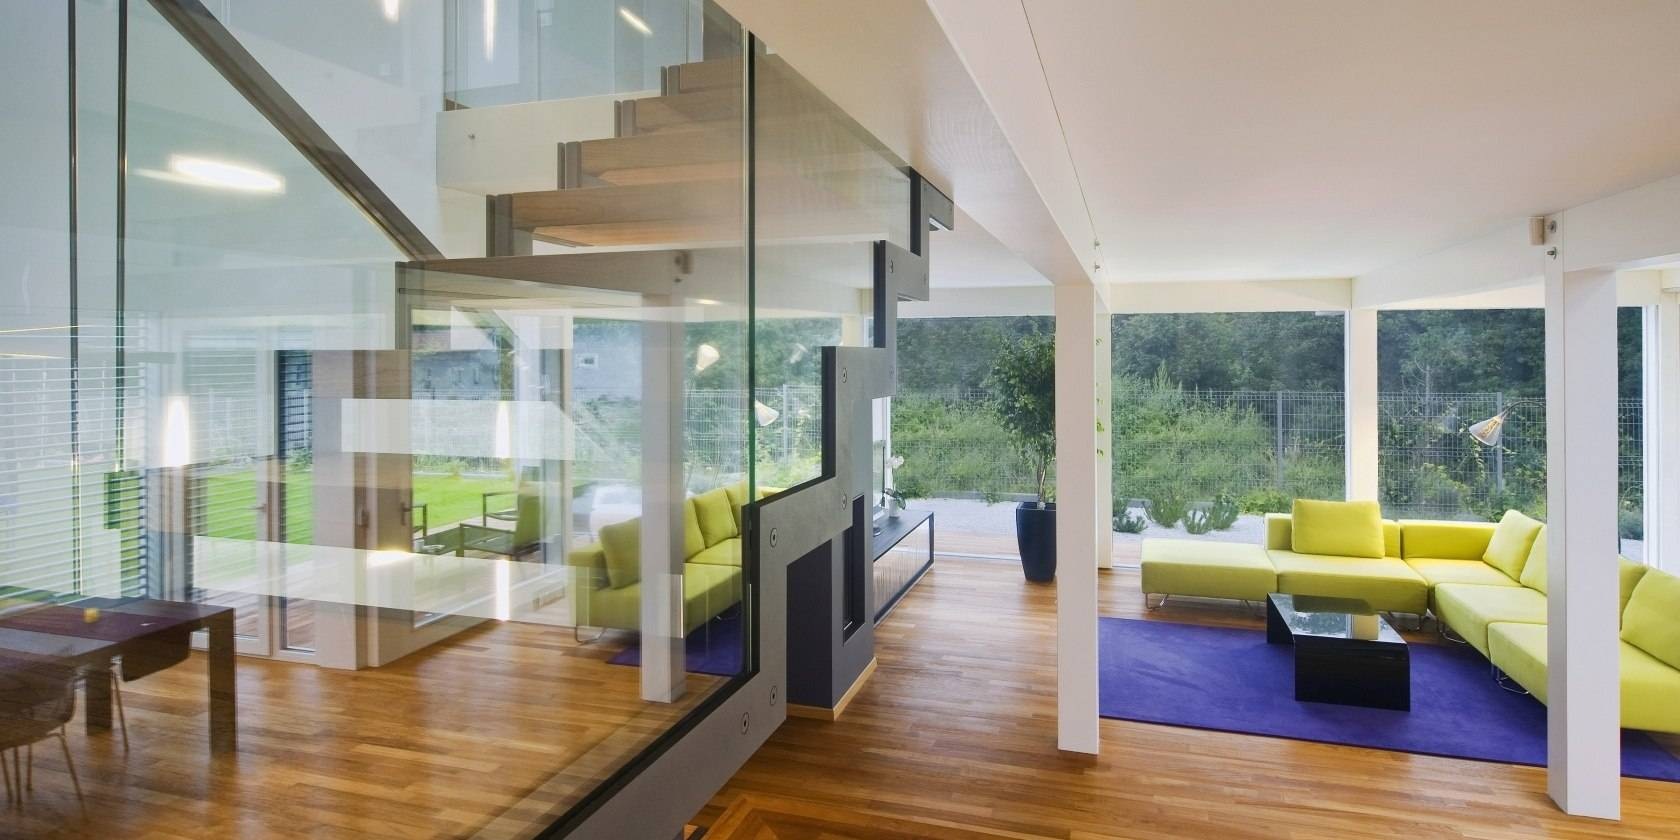 Captivating Kager Haus